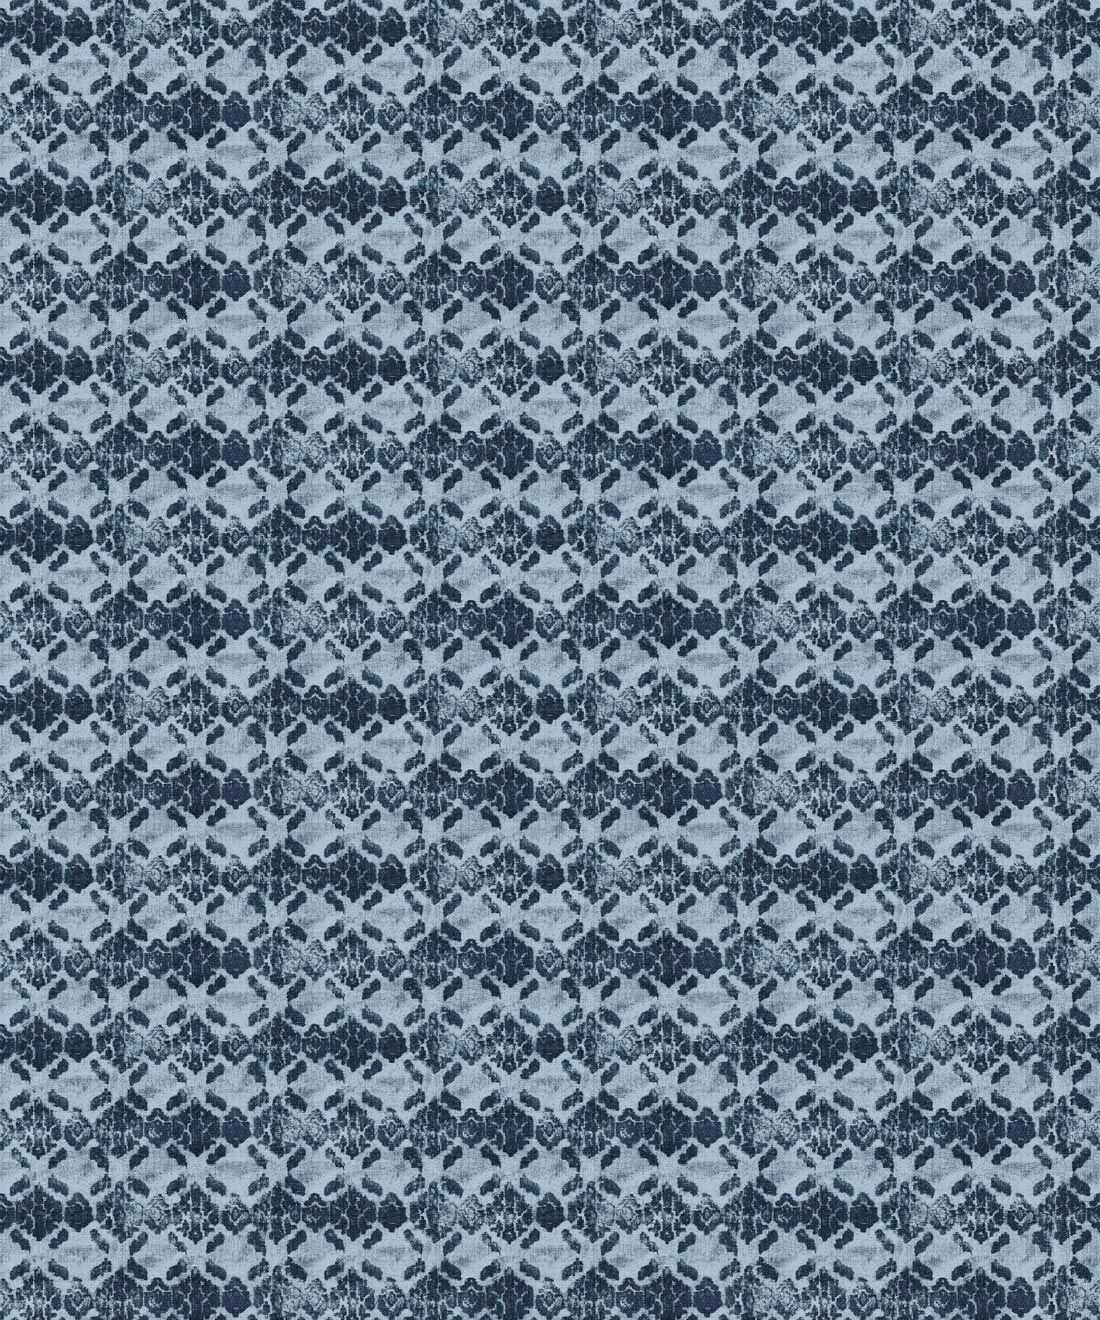 Indigo Blue Ikat Wallpaper • Shibori